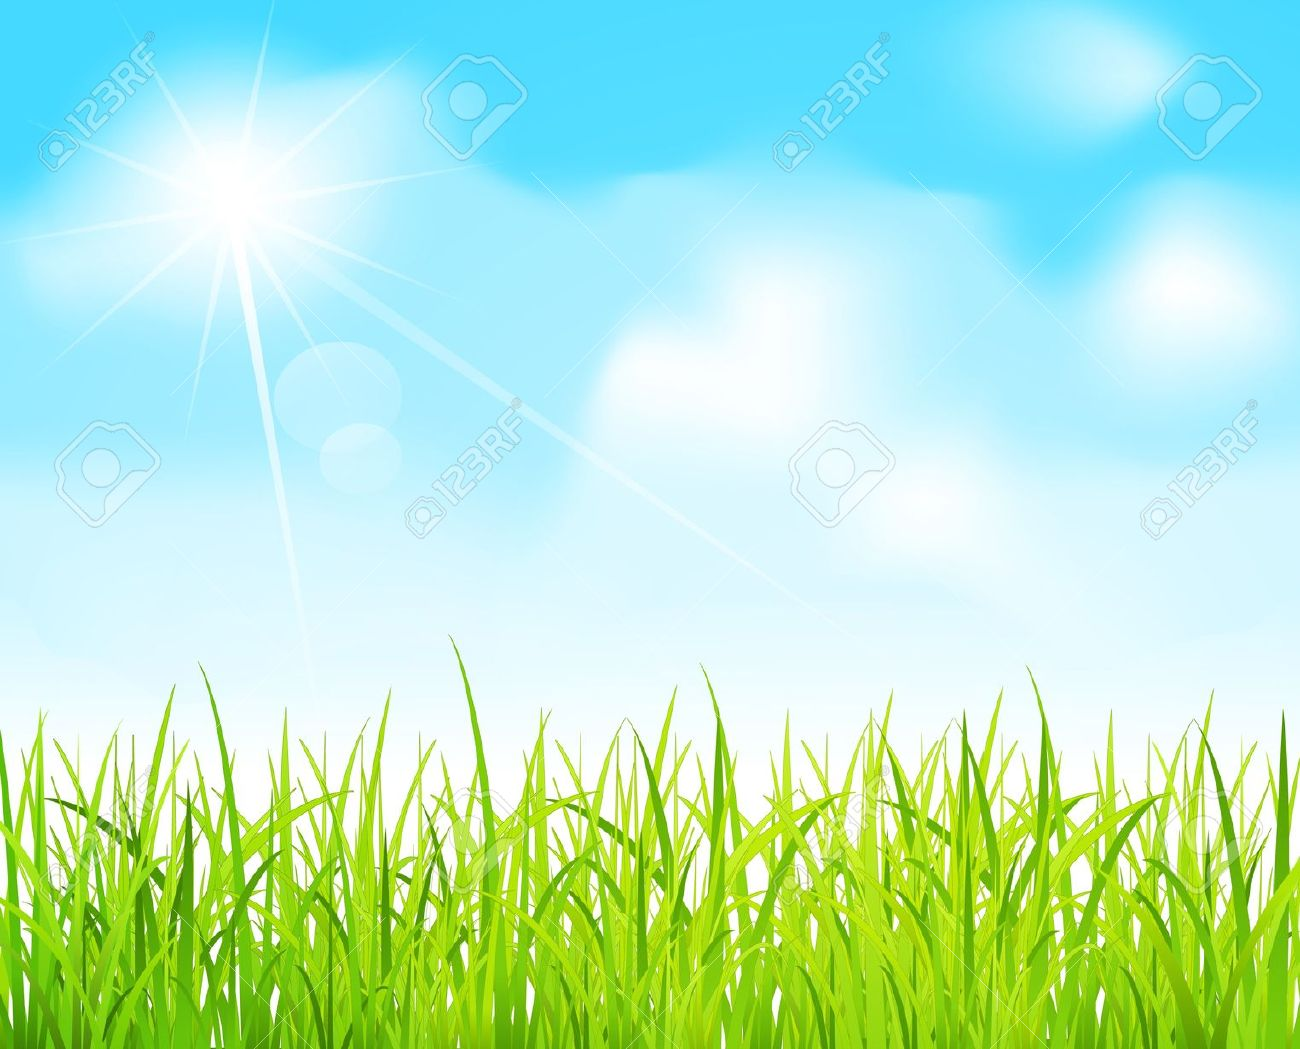 Feilds clipart lawn Field Sky Download Clip on